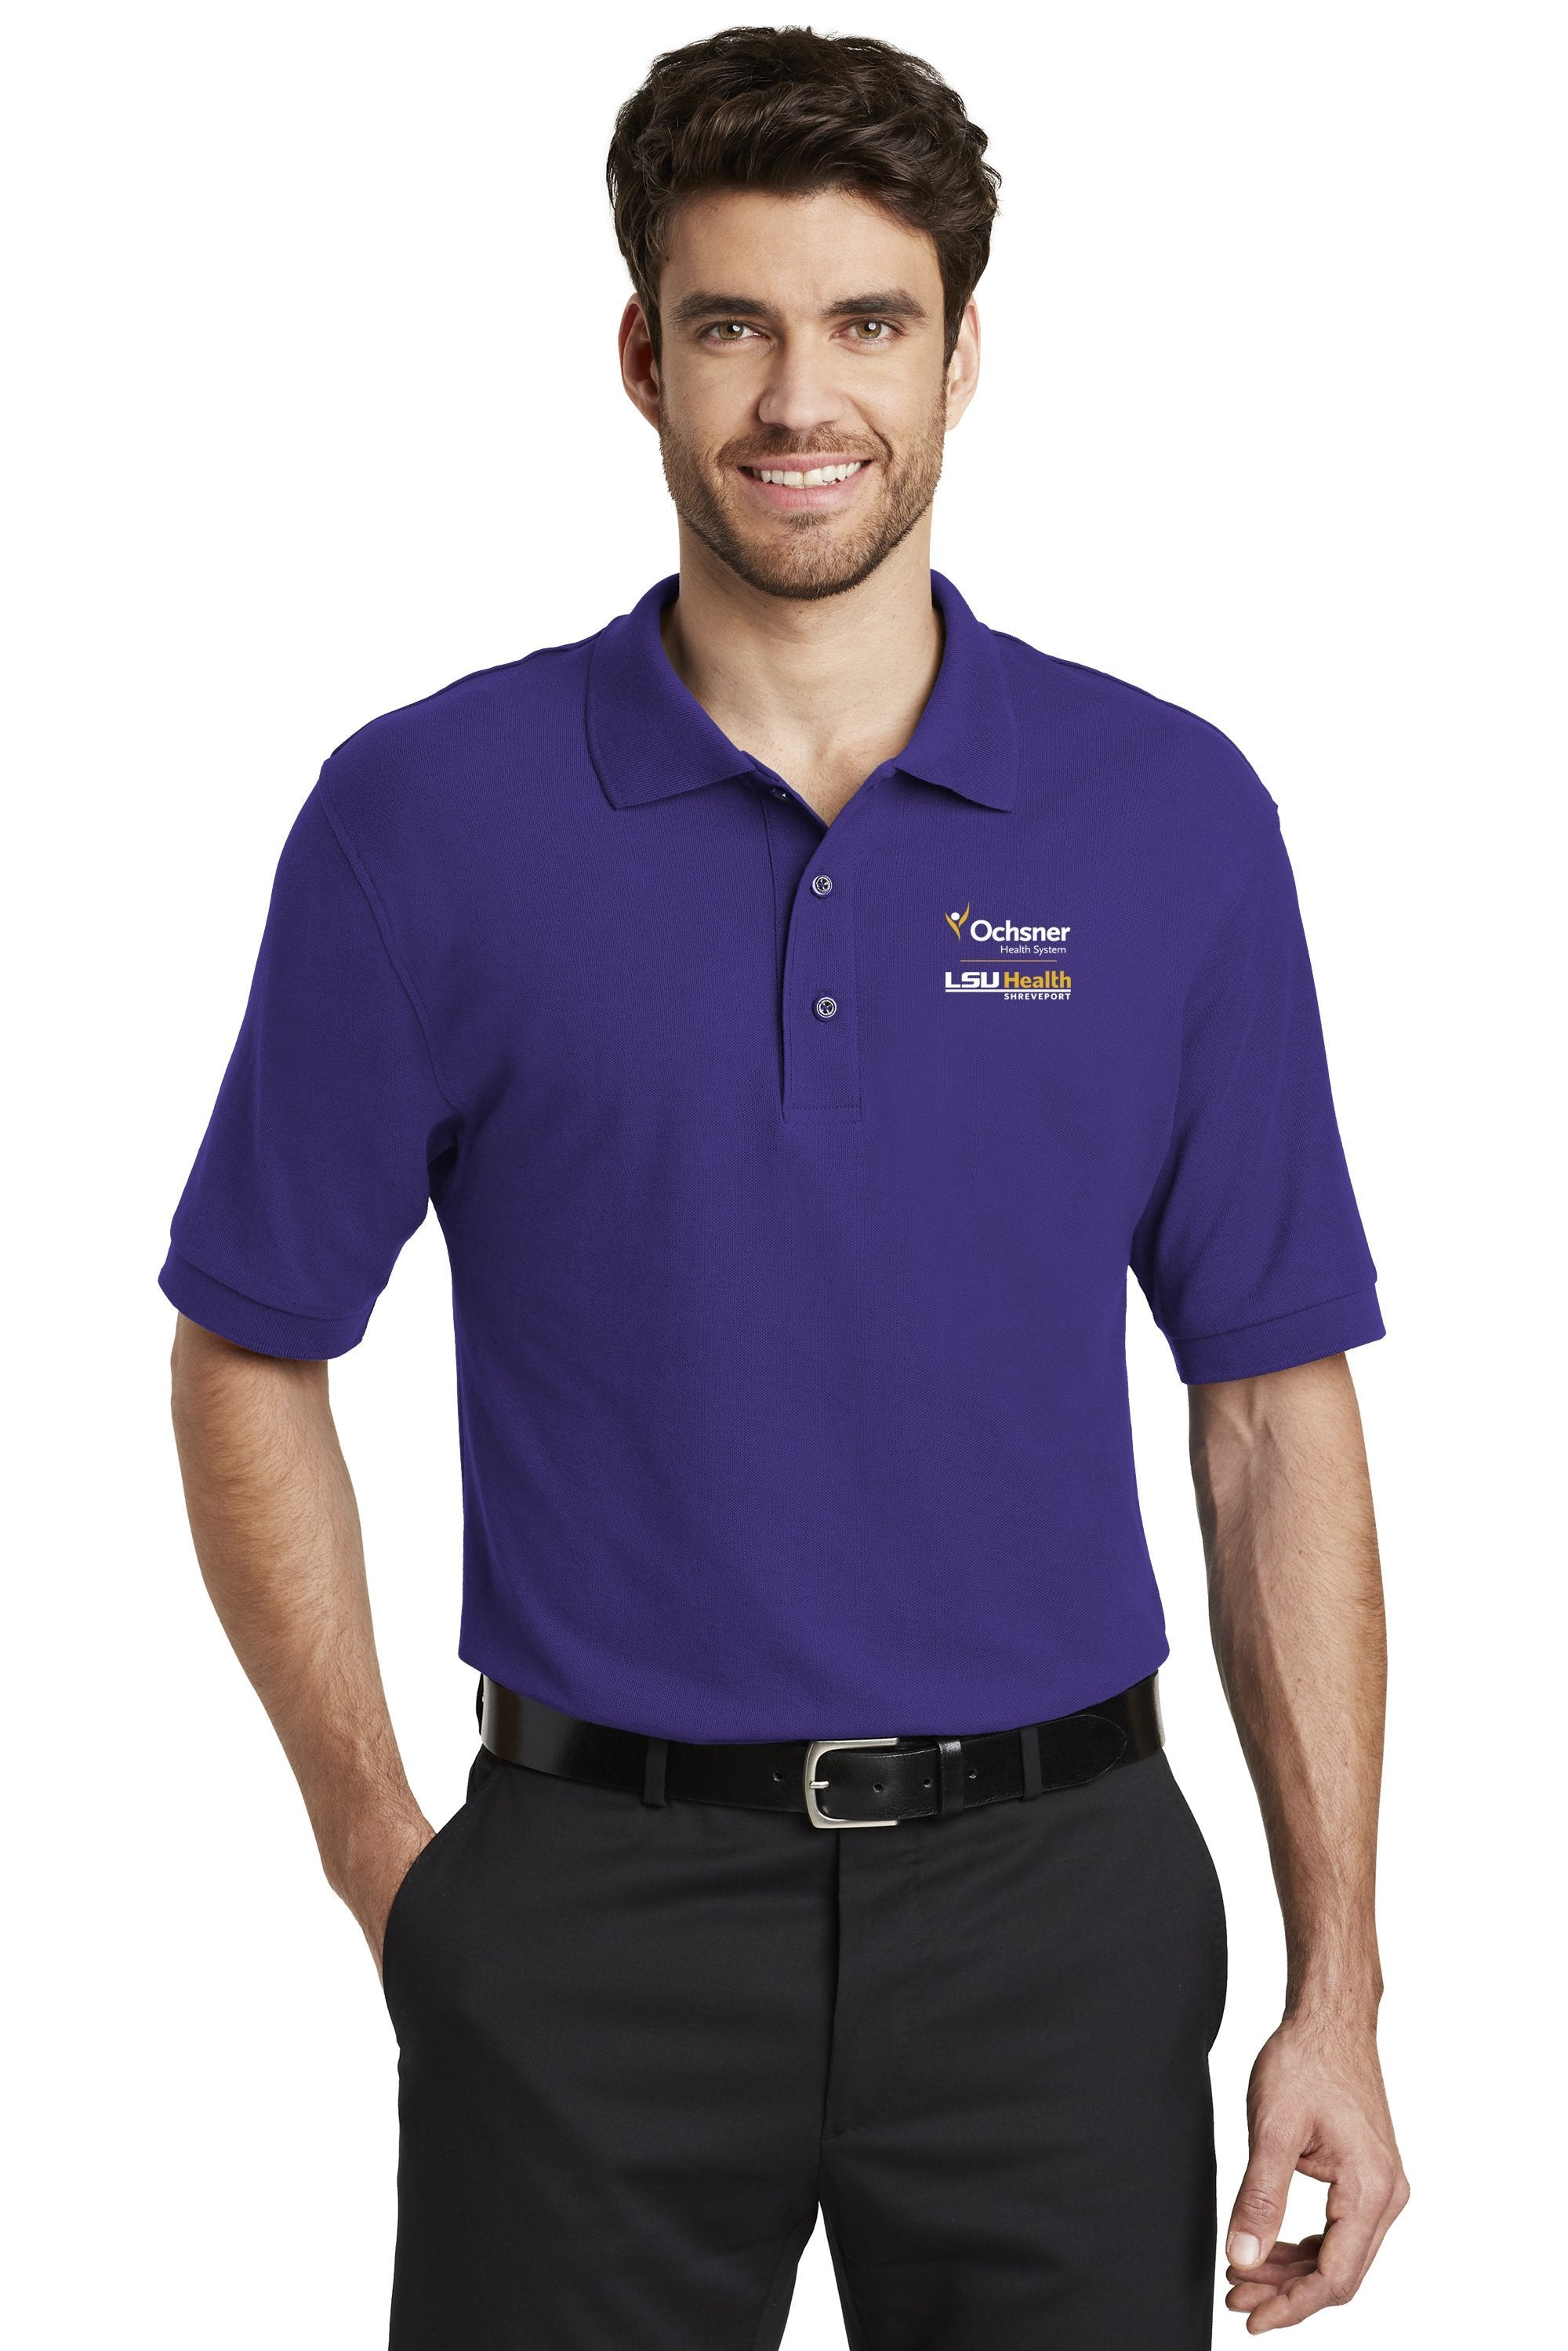 Short Sleeve Silk Touch Polo w/Ochsner LSU Shreveport logo